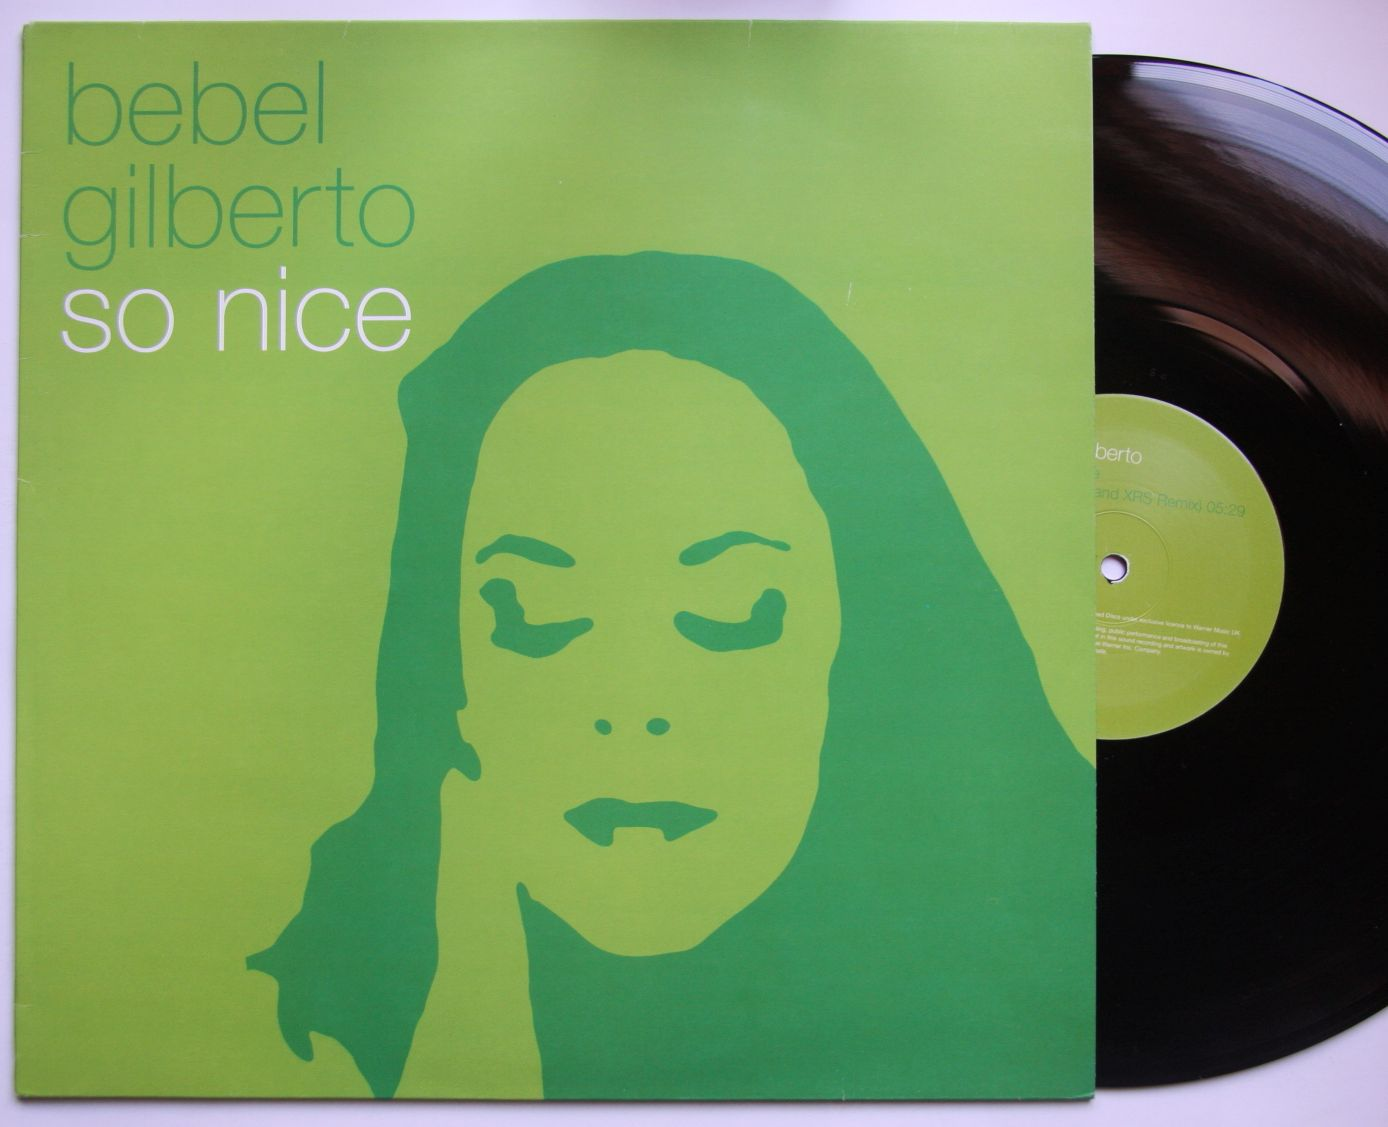 Bebel gilberto so nice records lps vinyl and cds for So nice images